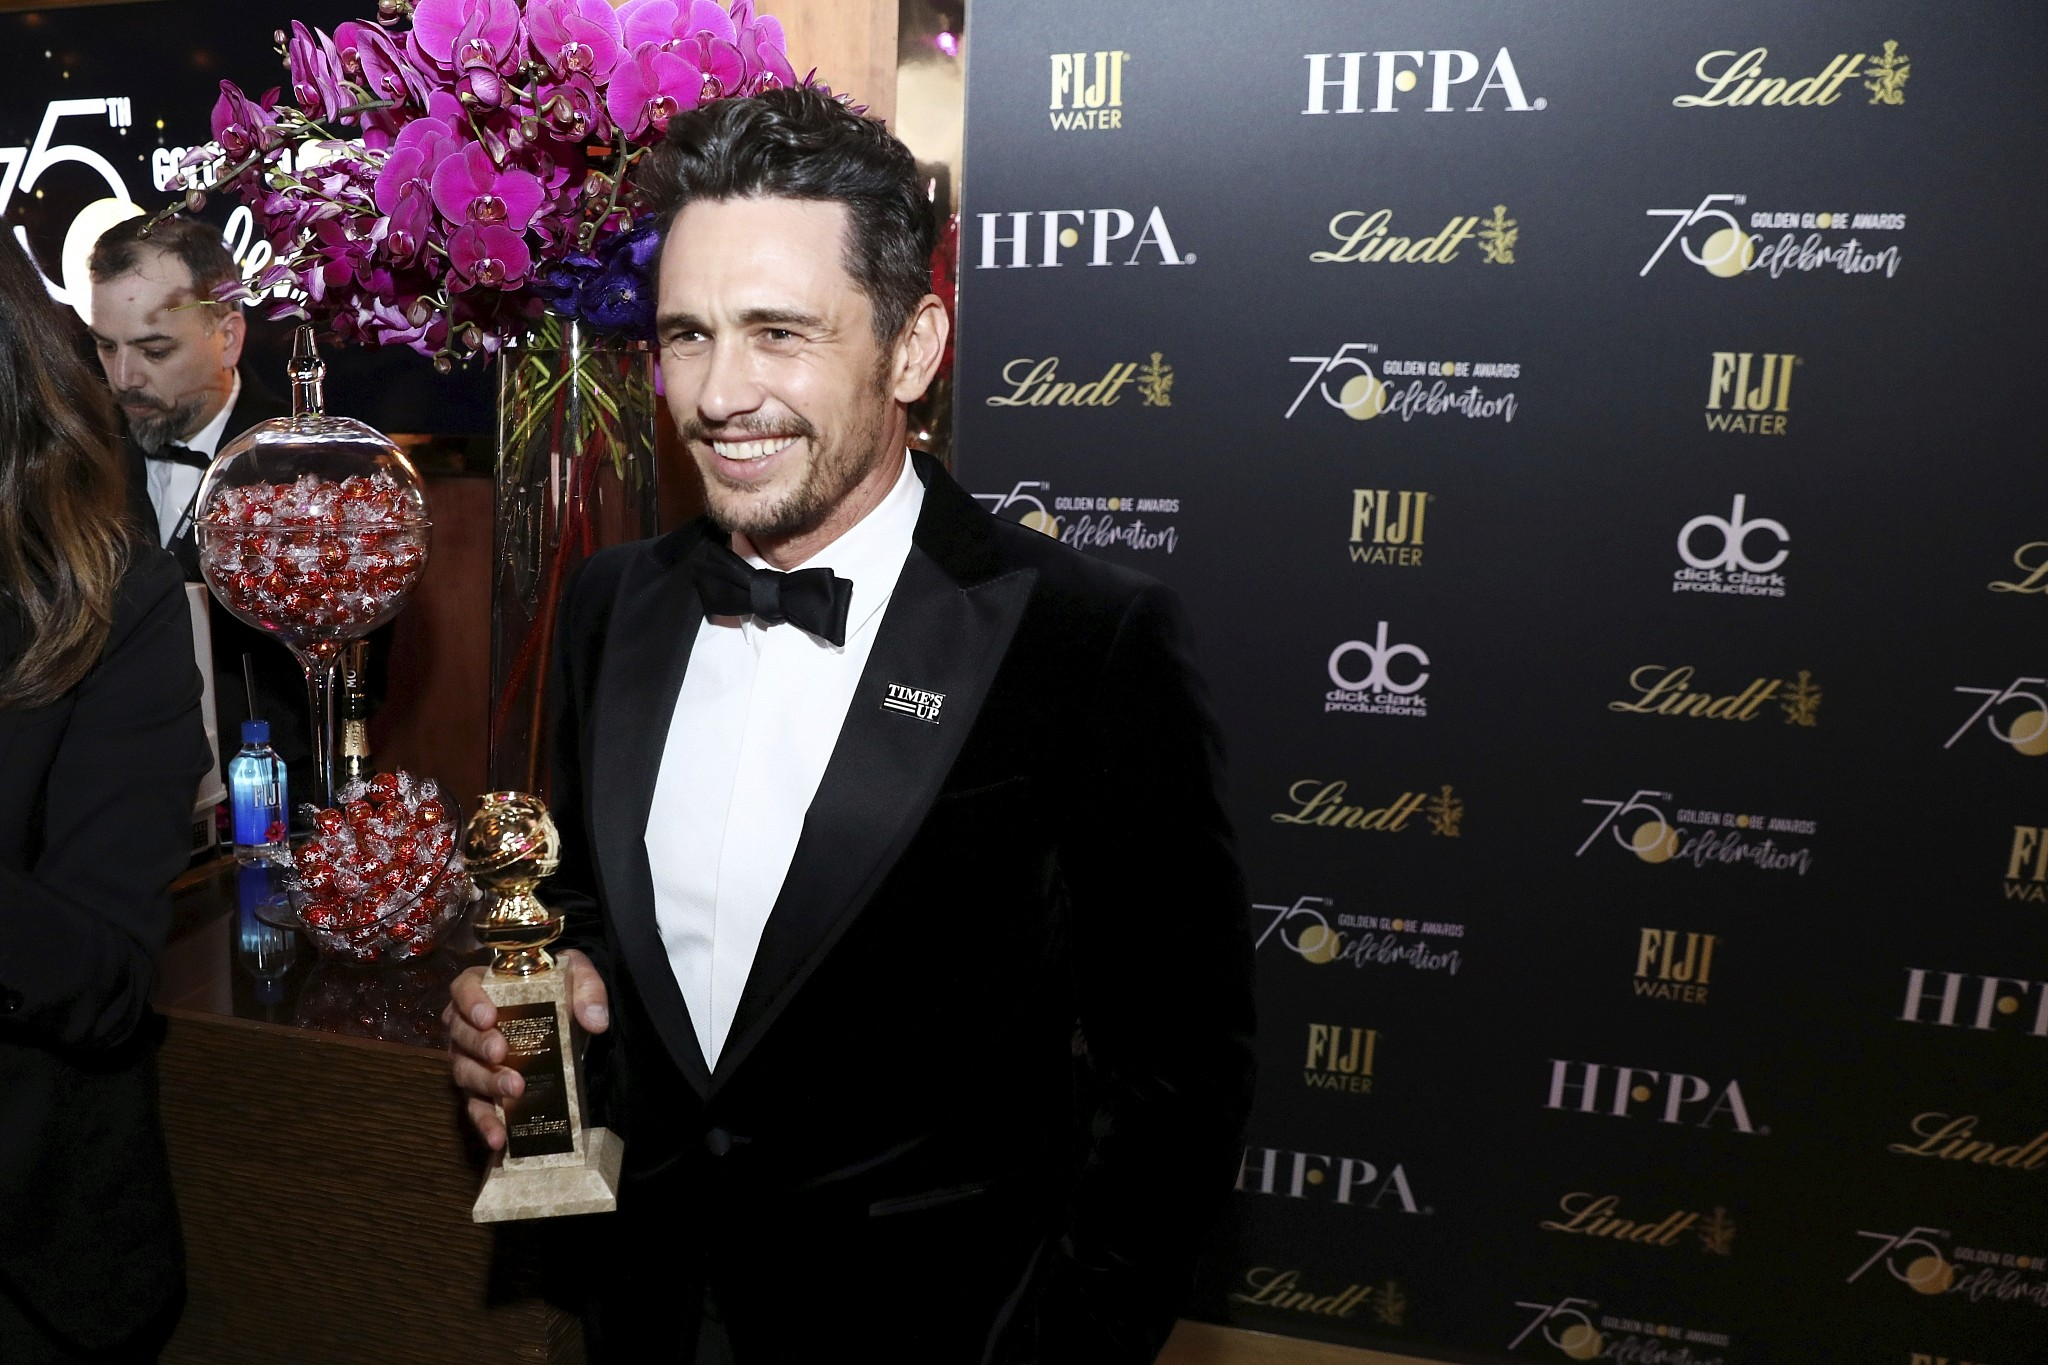 james franco denies sexual misconduct allegations but